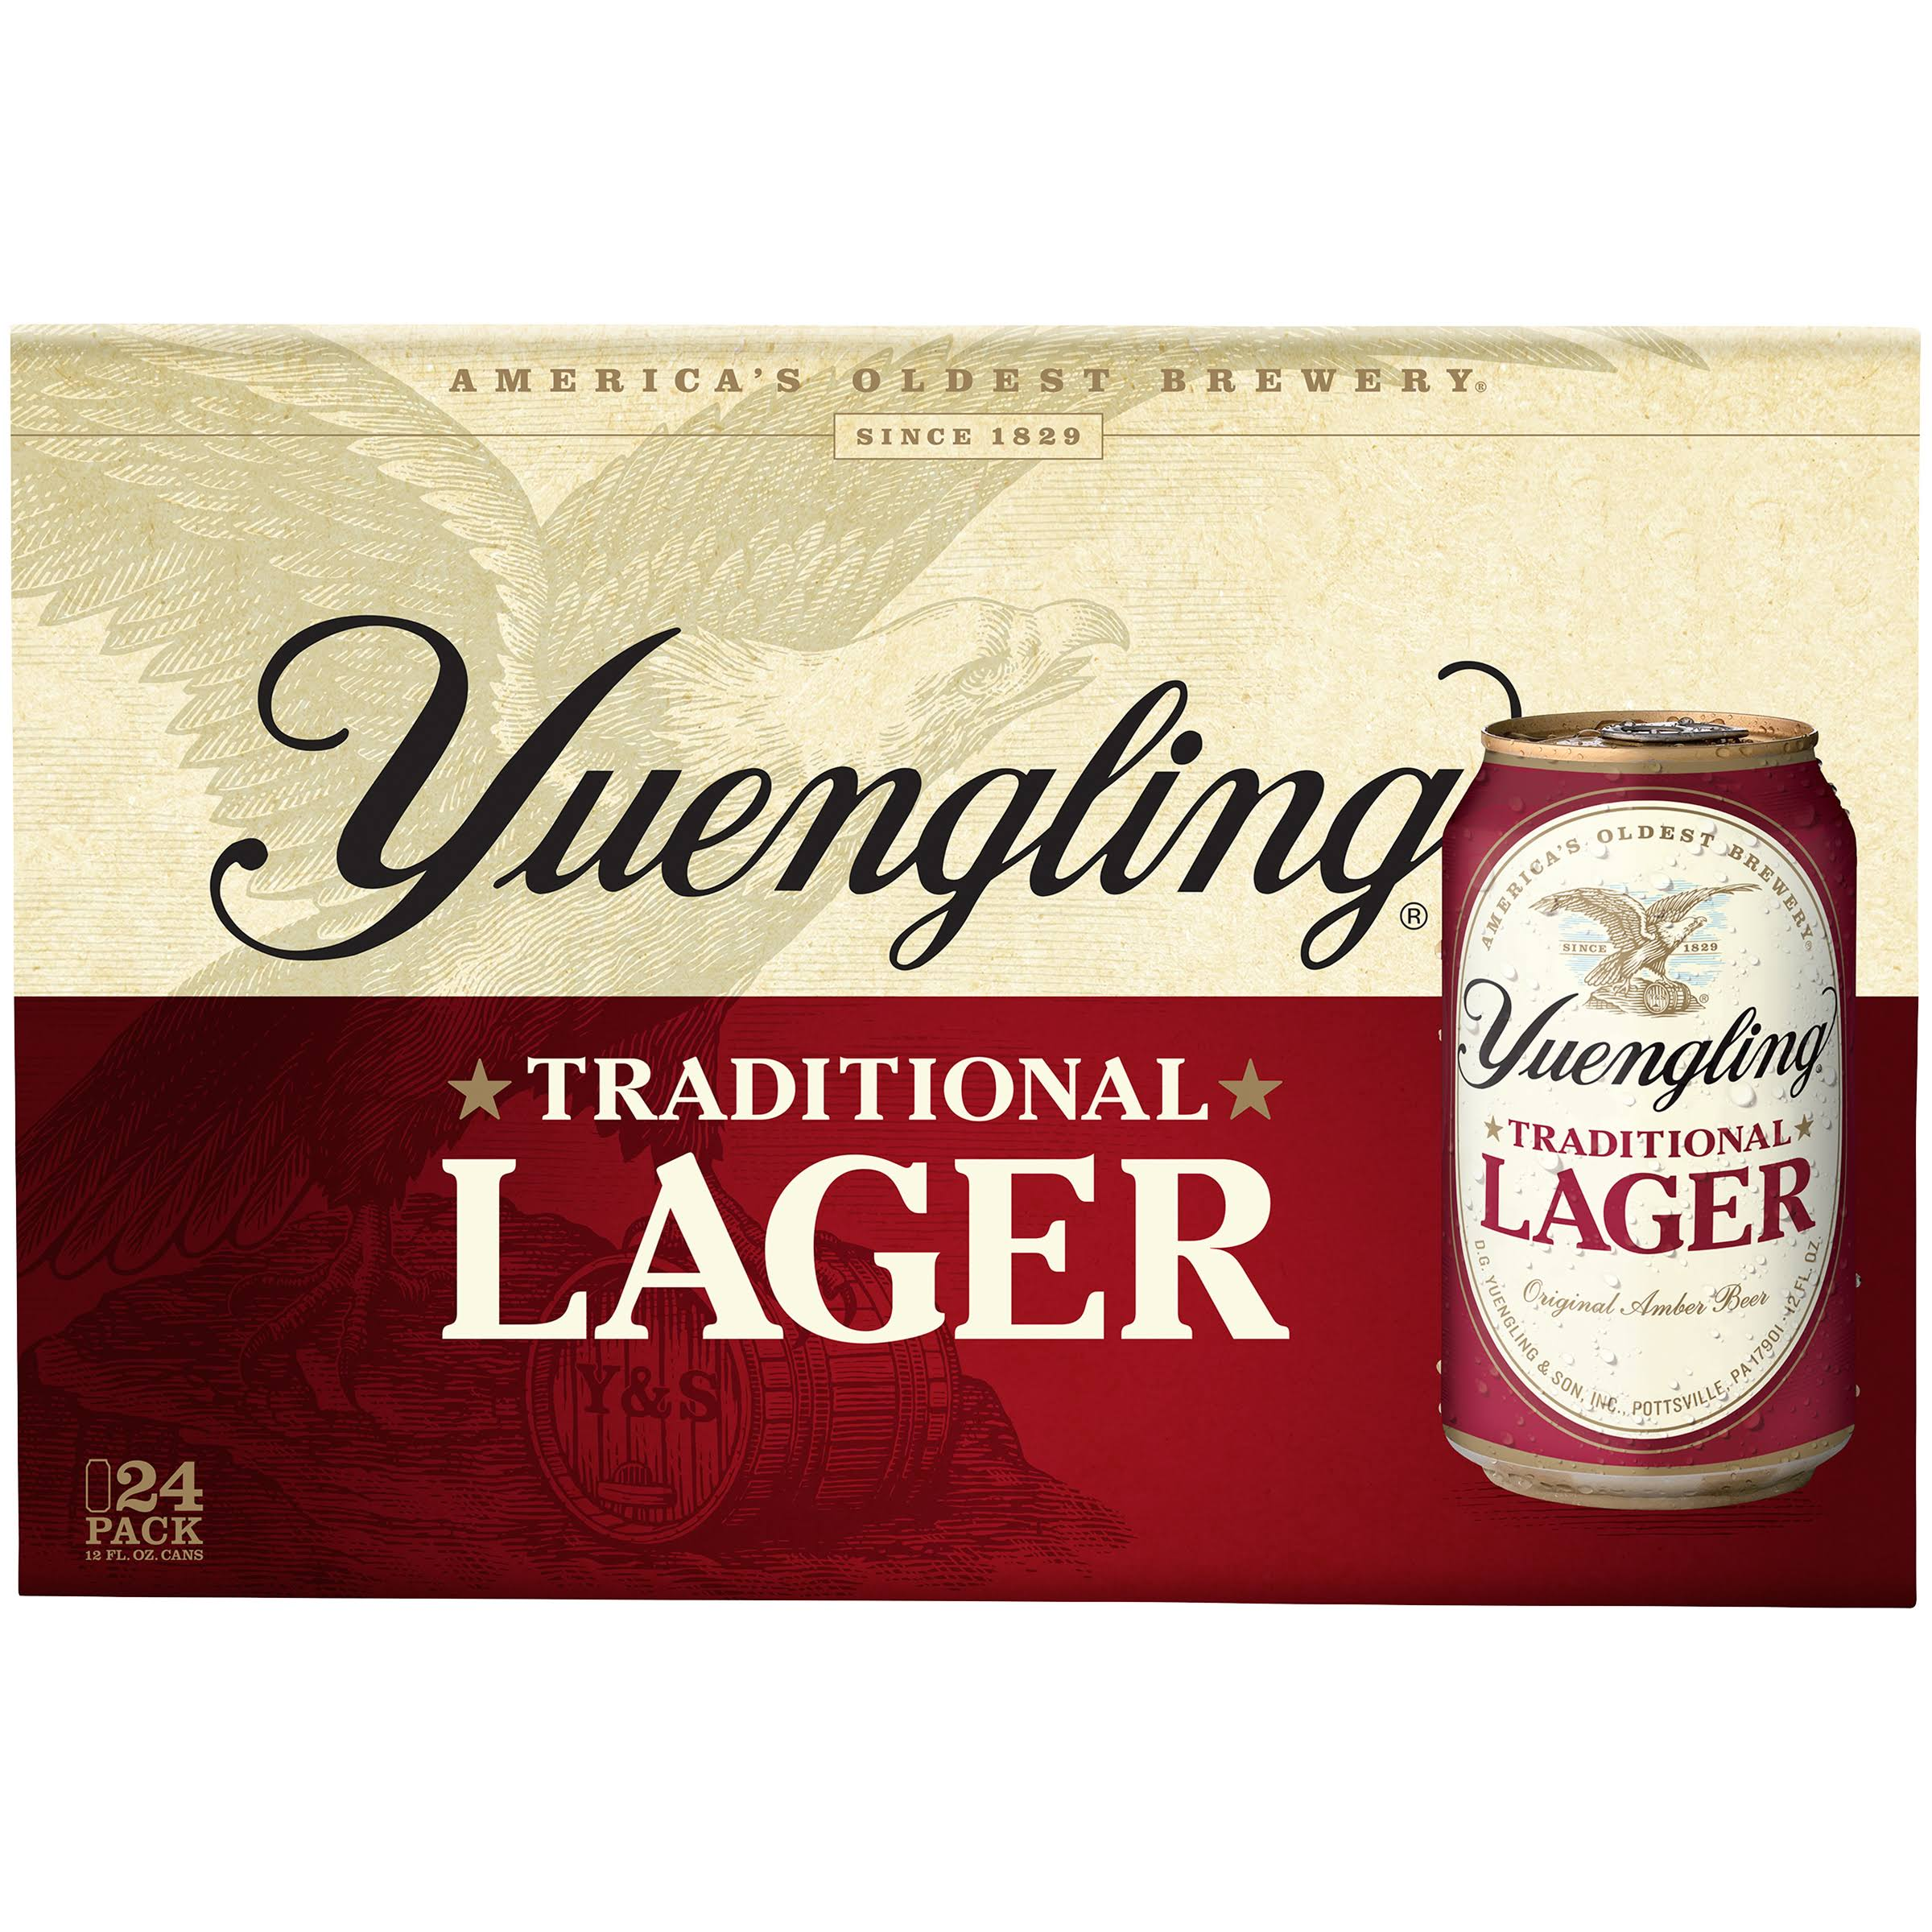 Yuengling Traditional Original Amber Lager - 24 Cans